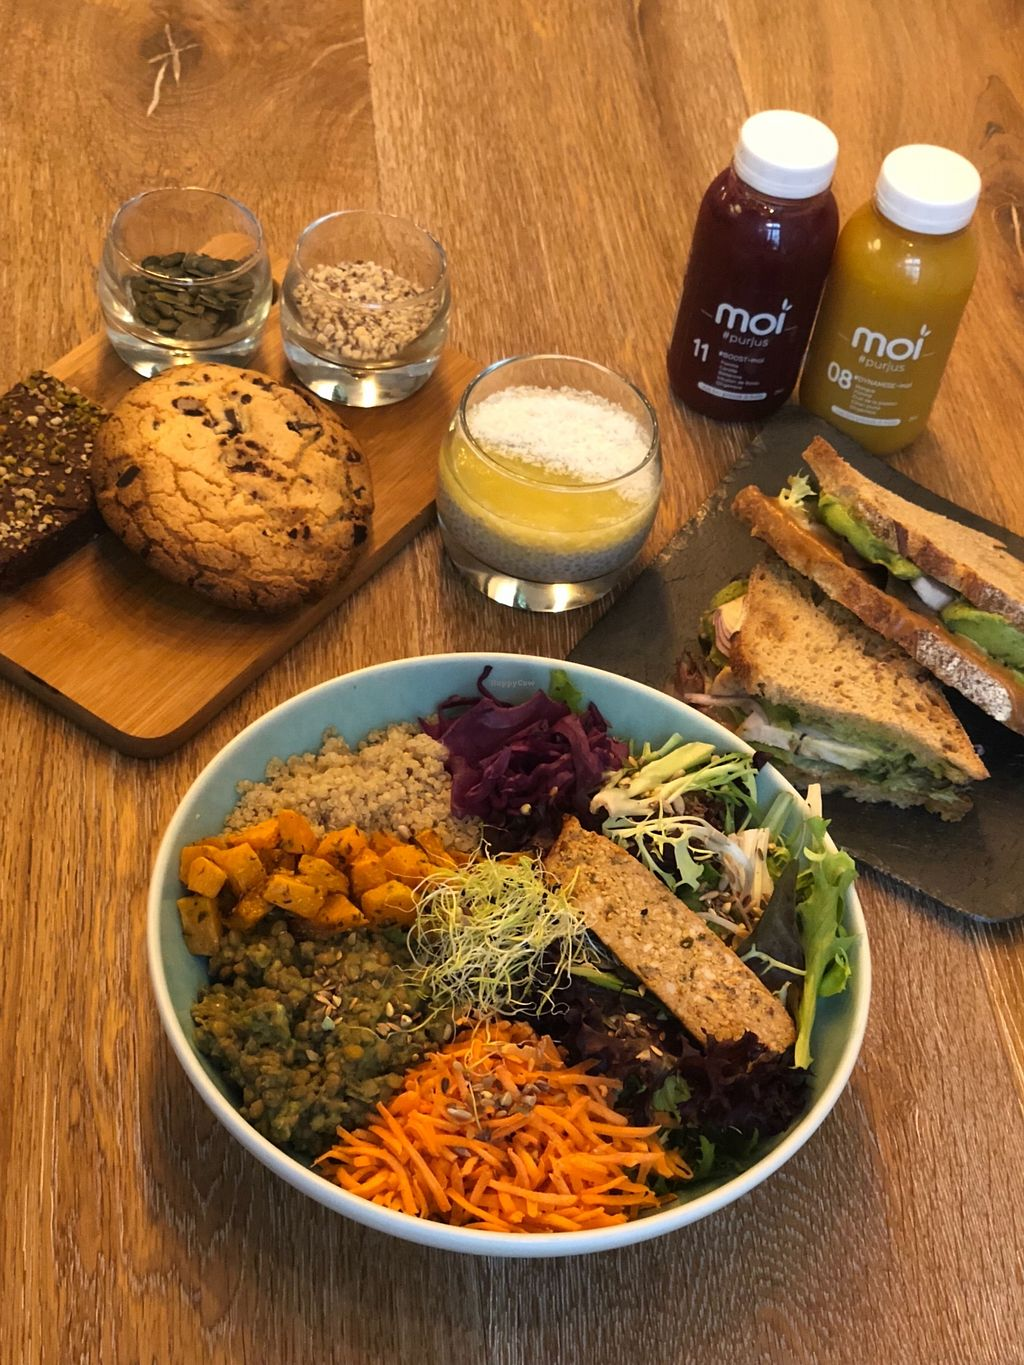 """Photo of Moi  by <a href=""""/members/profile/Fhuvet"""">Fhuvet</a> <br/>Vegan dinner <br/> March 22, 2018  - <a href='/contact/abuse/image/114236/374402'>Report</a>"""